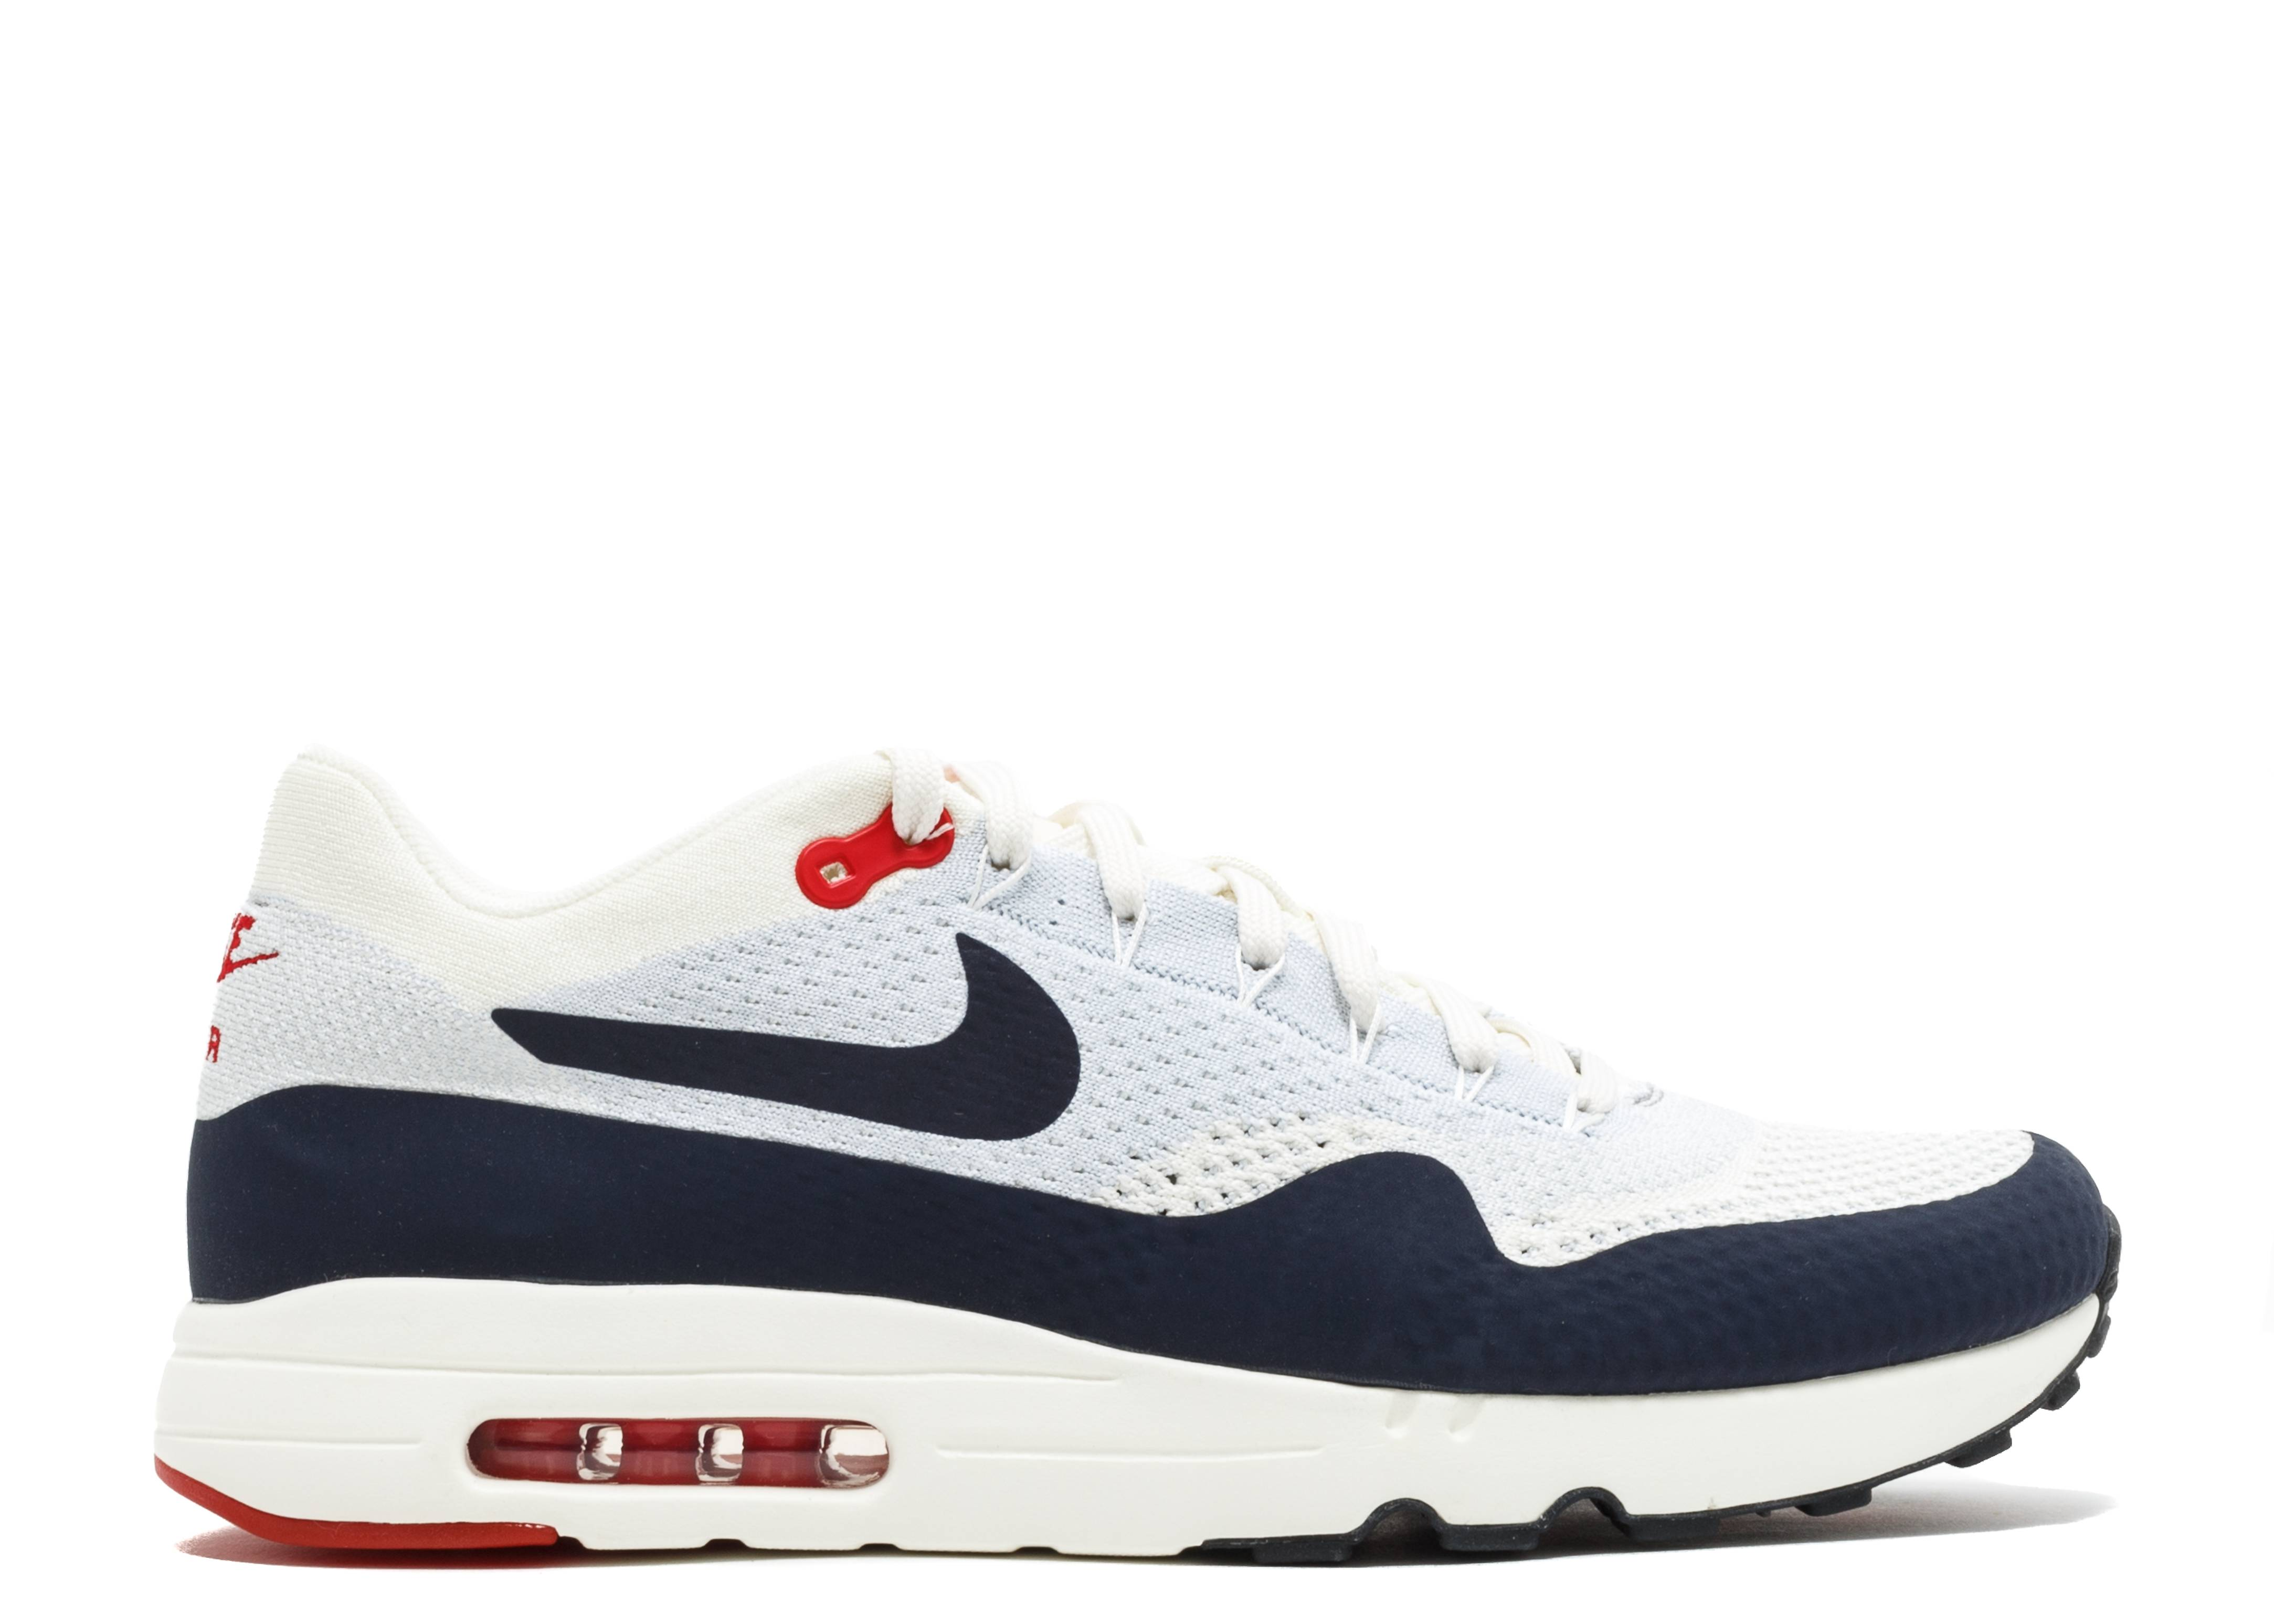 quality design 53691 991d6 AIR MAX 1 ULTRA 2.0 FLYKNIT